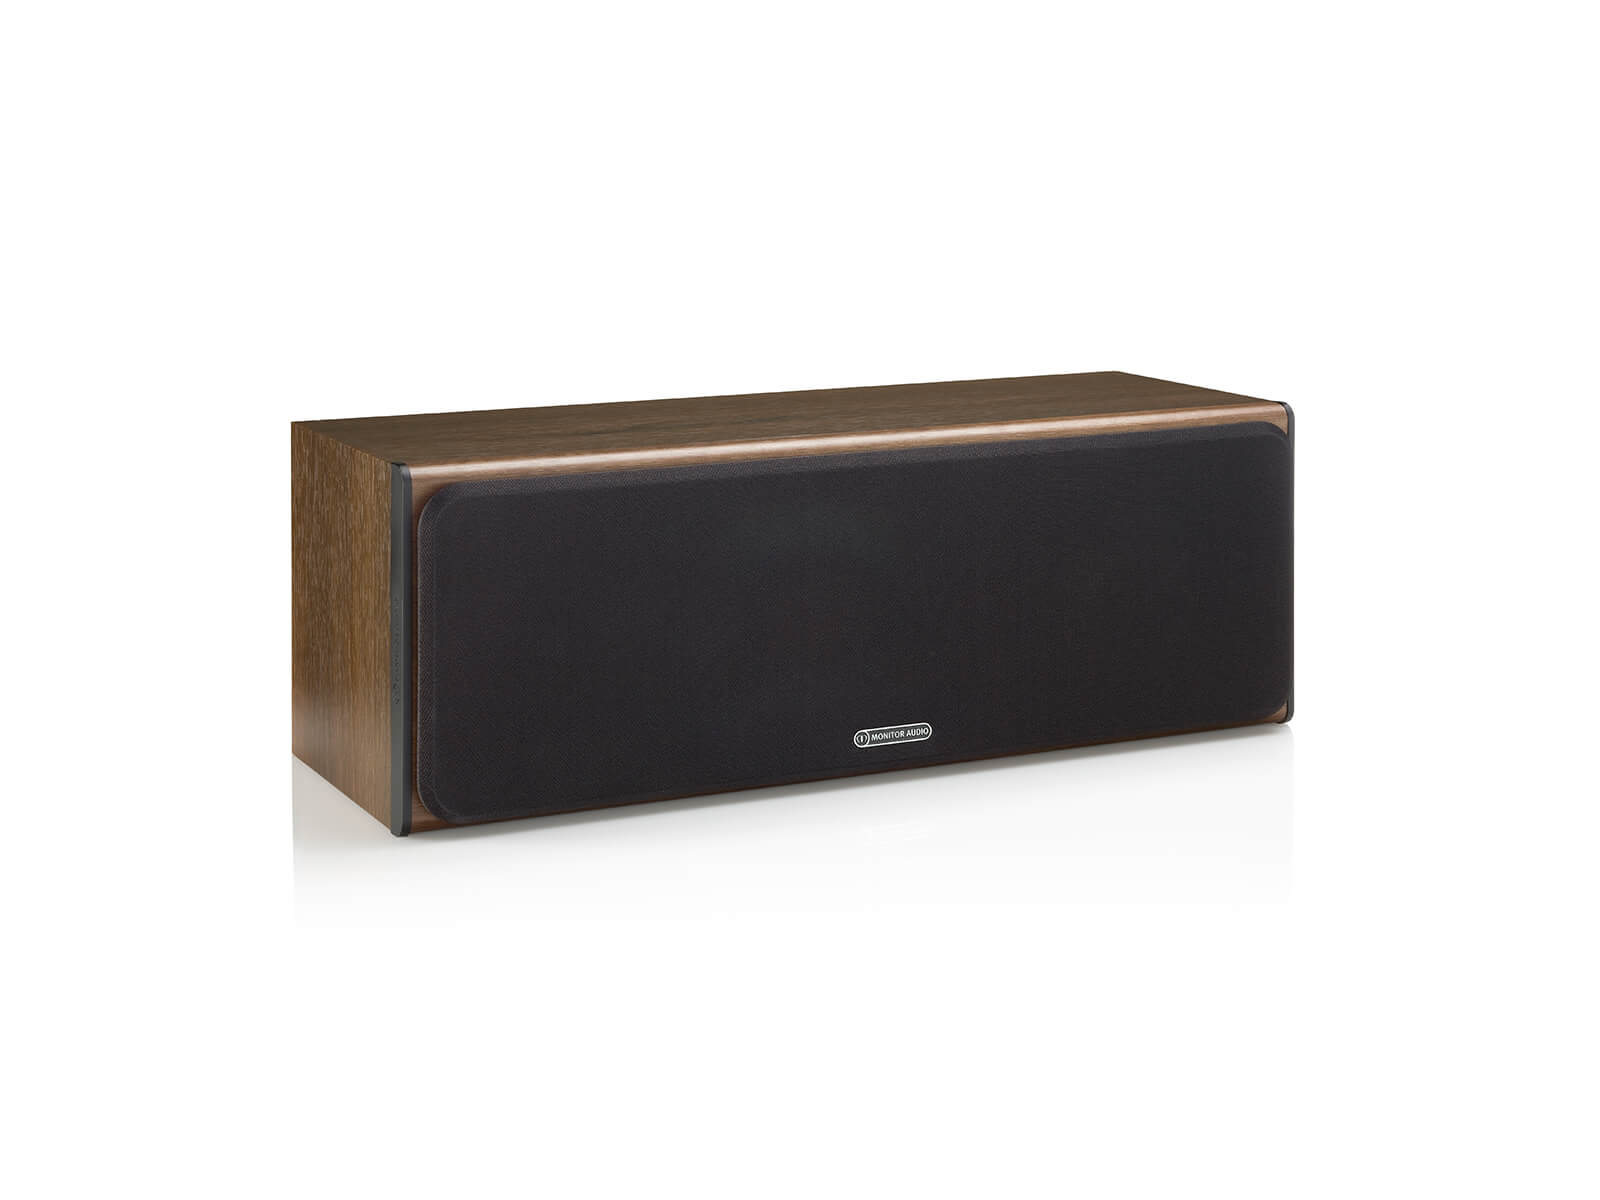 Bronze Centre, centre channel speakers, featuring a grille and a walnut vinyl finish.